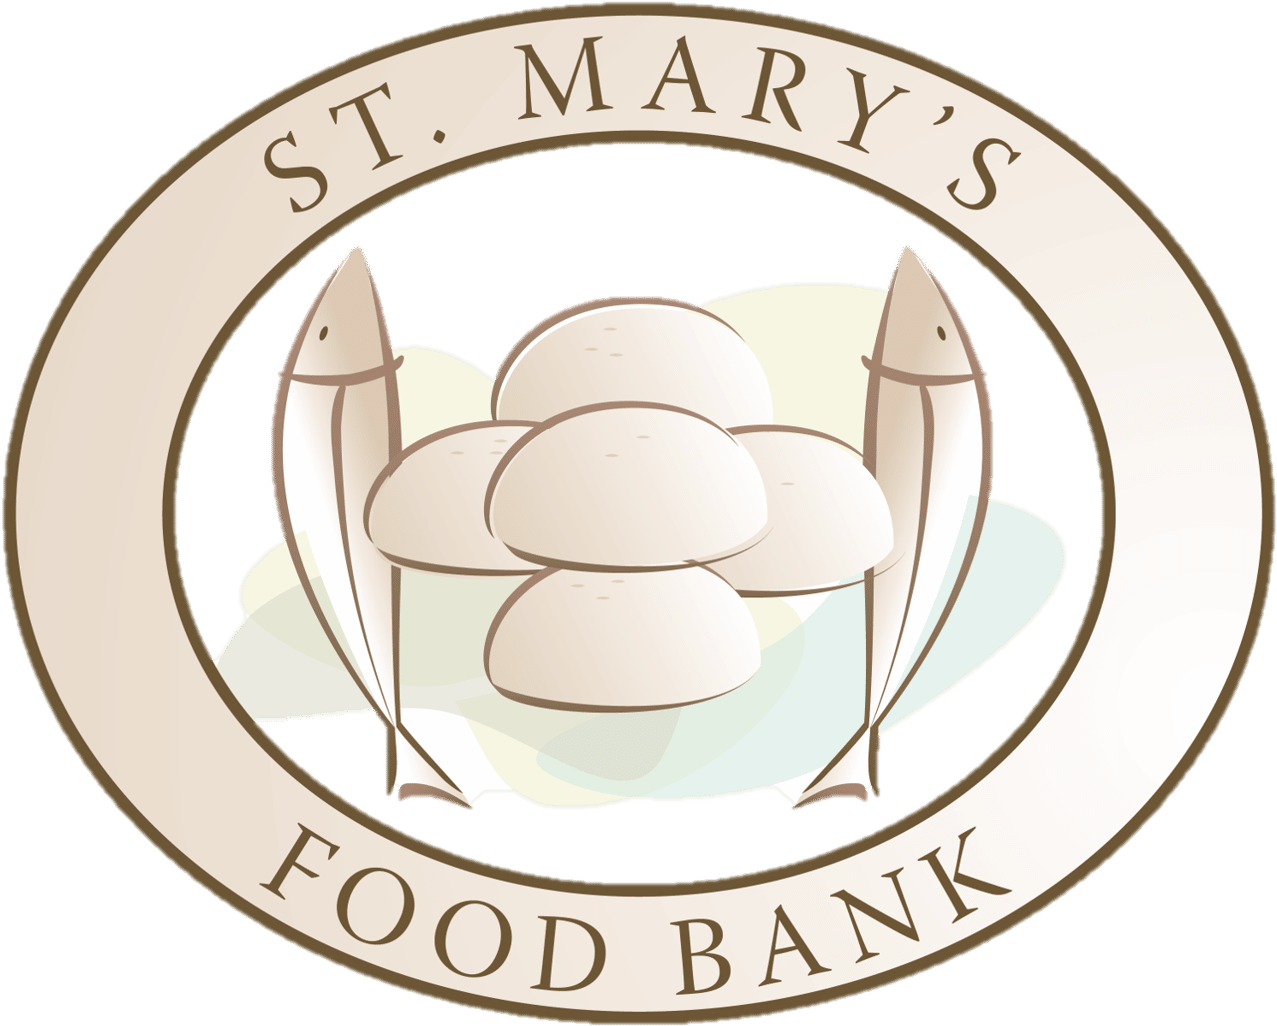 St Mary's Food Bank Mississauga